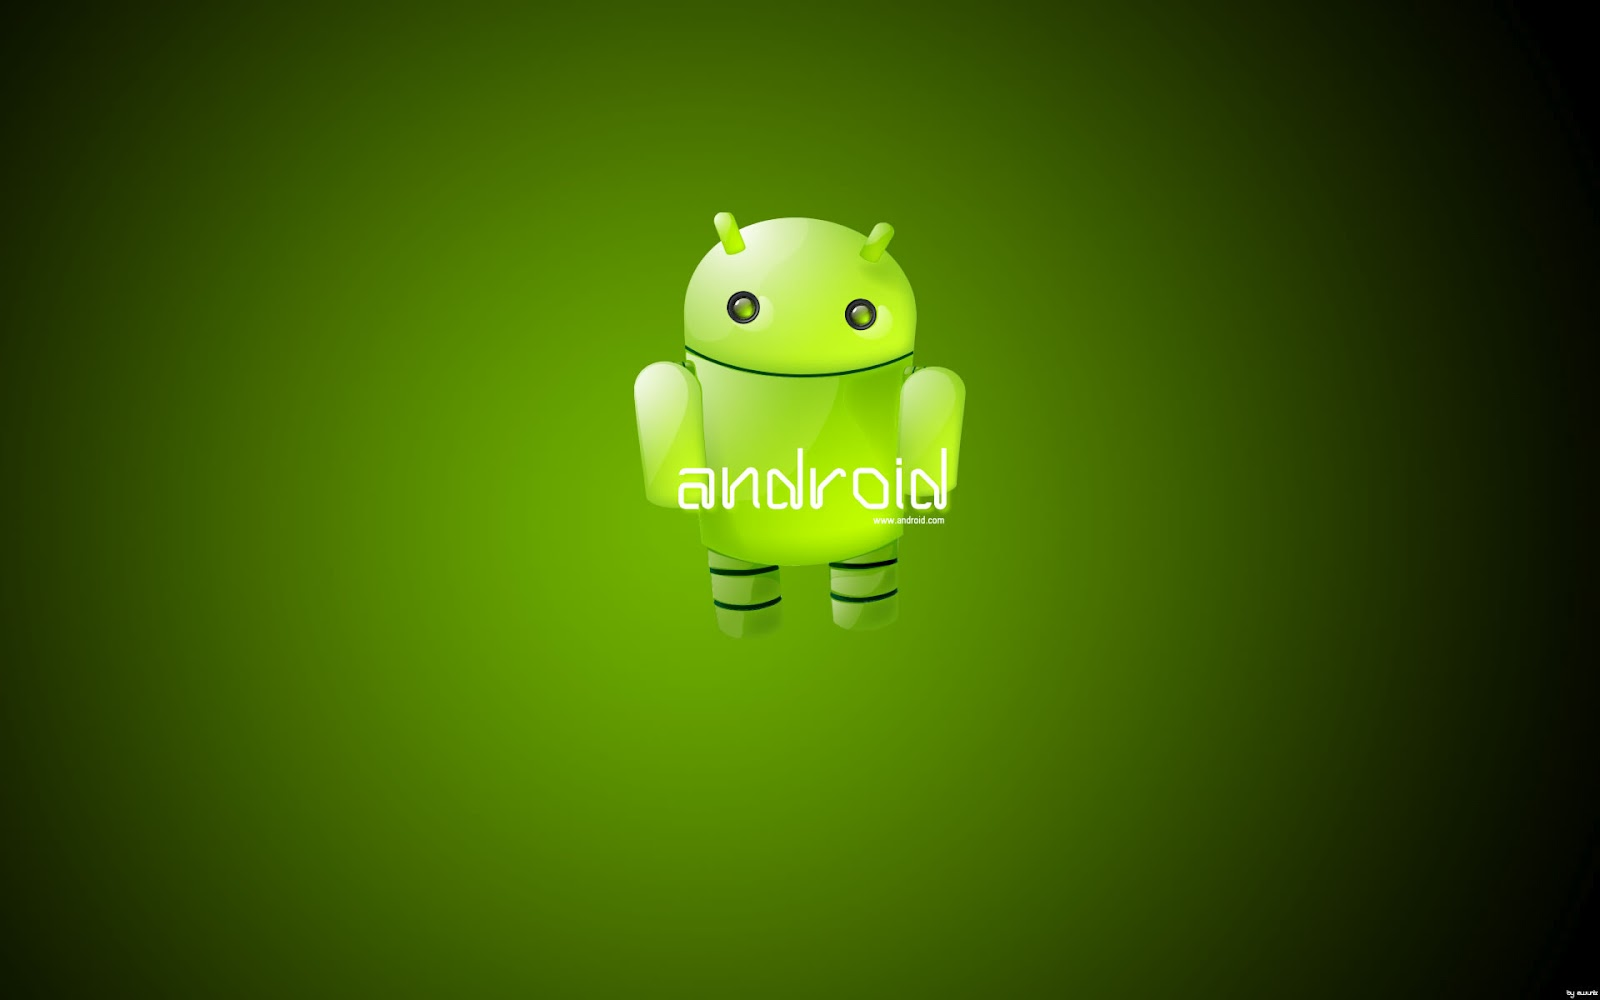 Wallpaper for Android Tablet PC iPad Retina HD Wallpapers 1600x1000